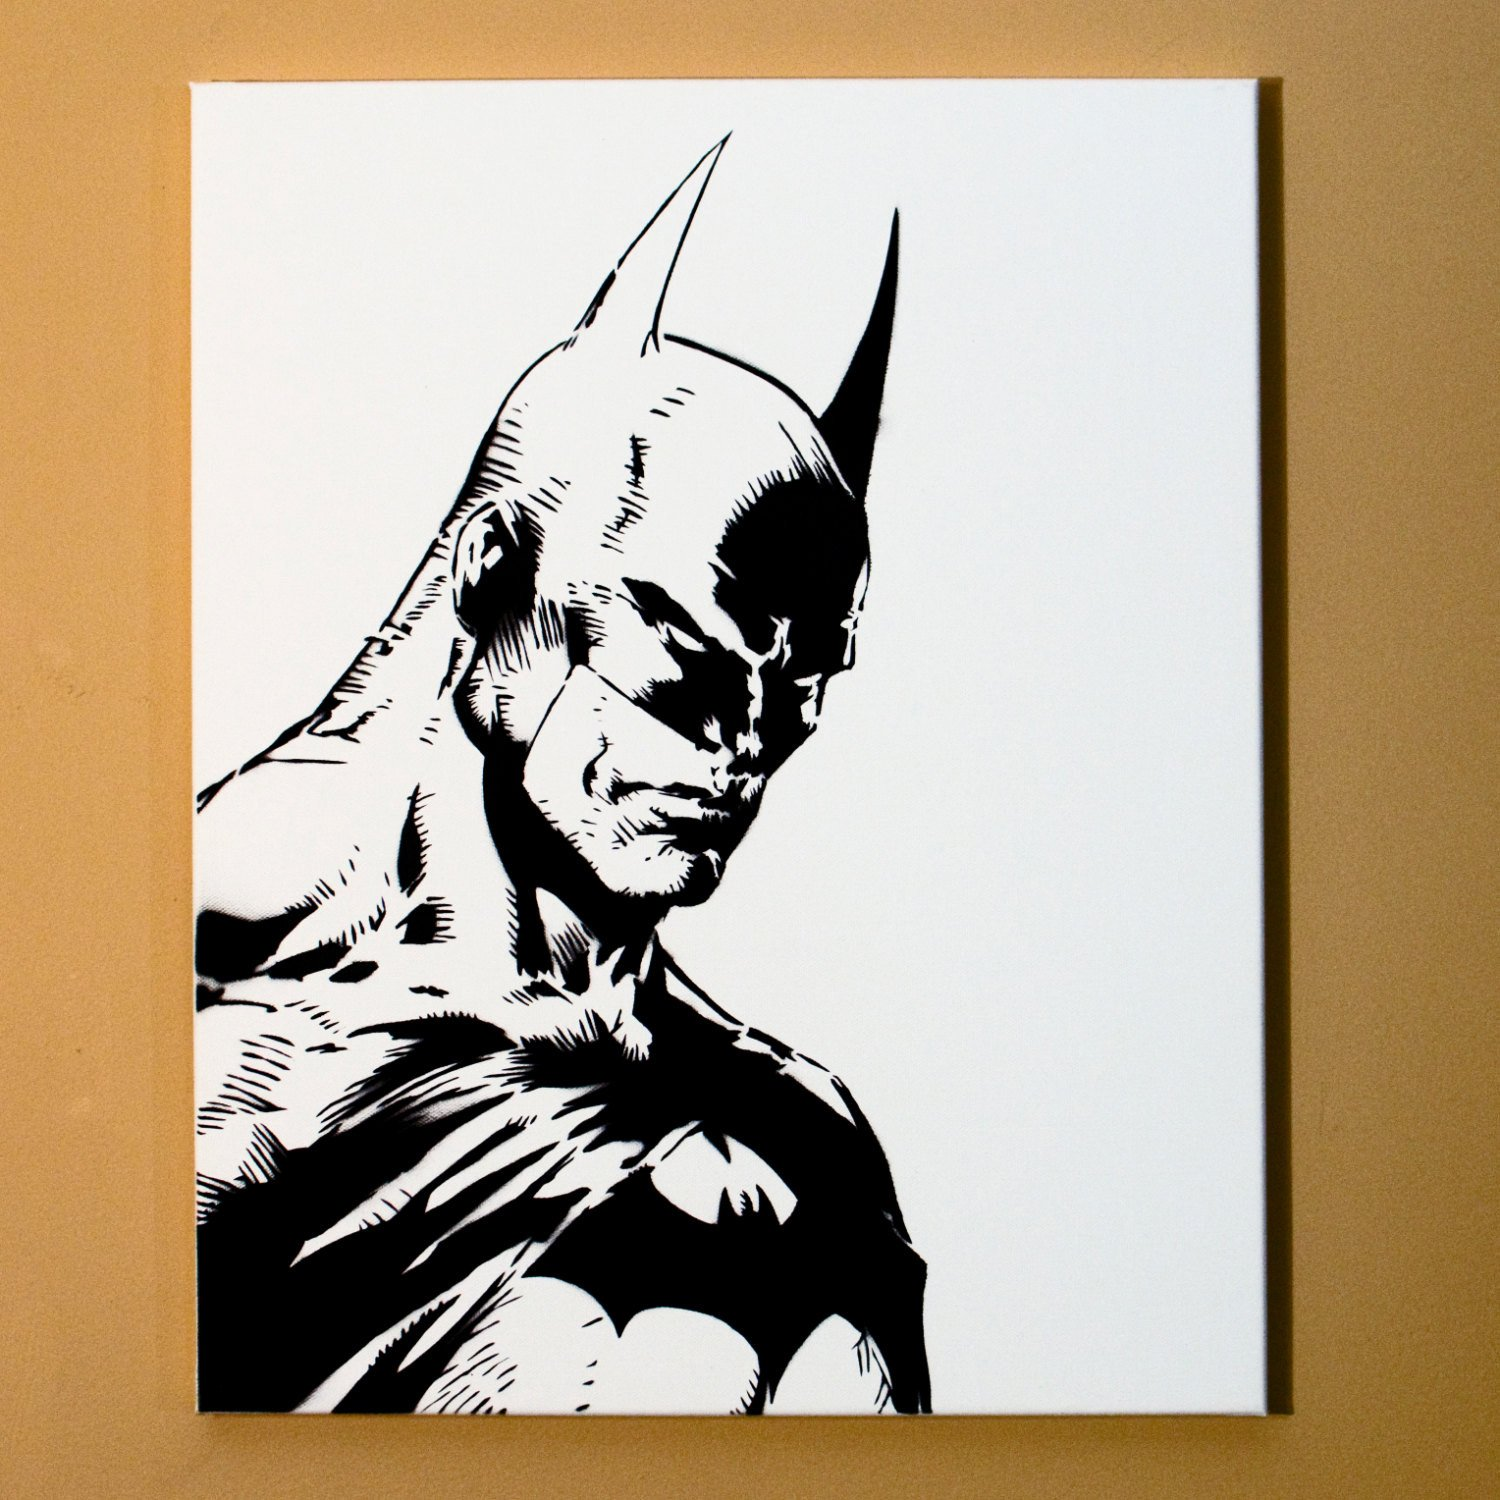 Spray Paint Art Stencils Batman Art Spray Paint From Handmade Stencil Black and